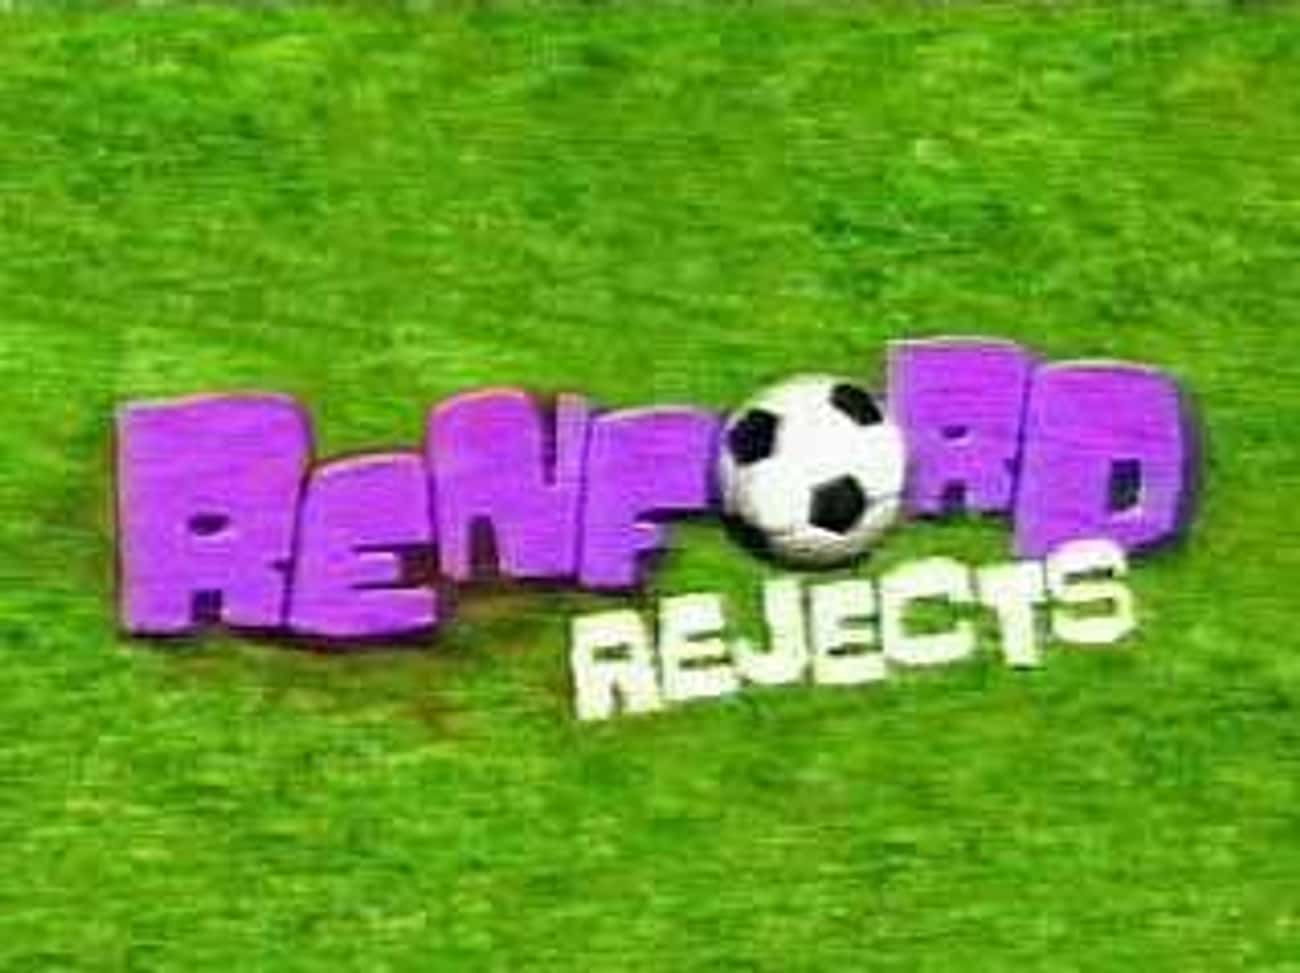 'Renford Rejects' Was The First Original Sitcom On Nick GAS